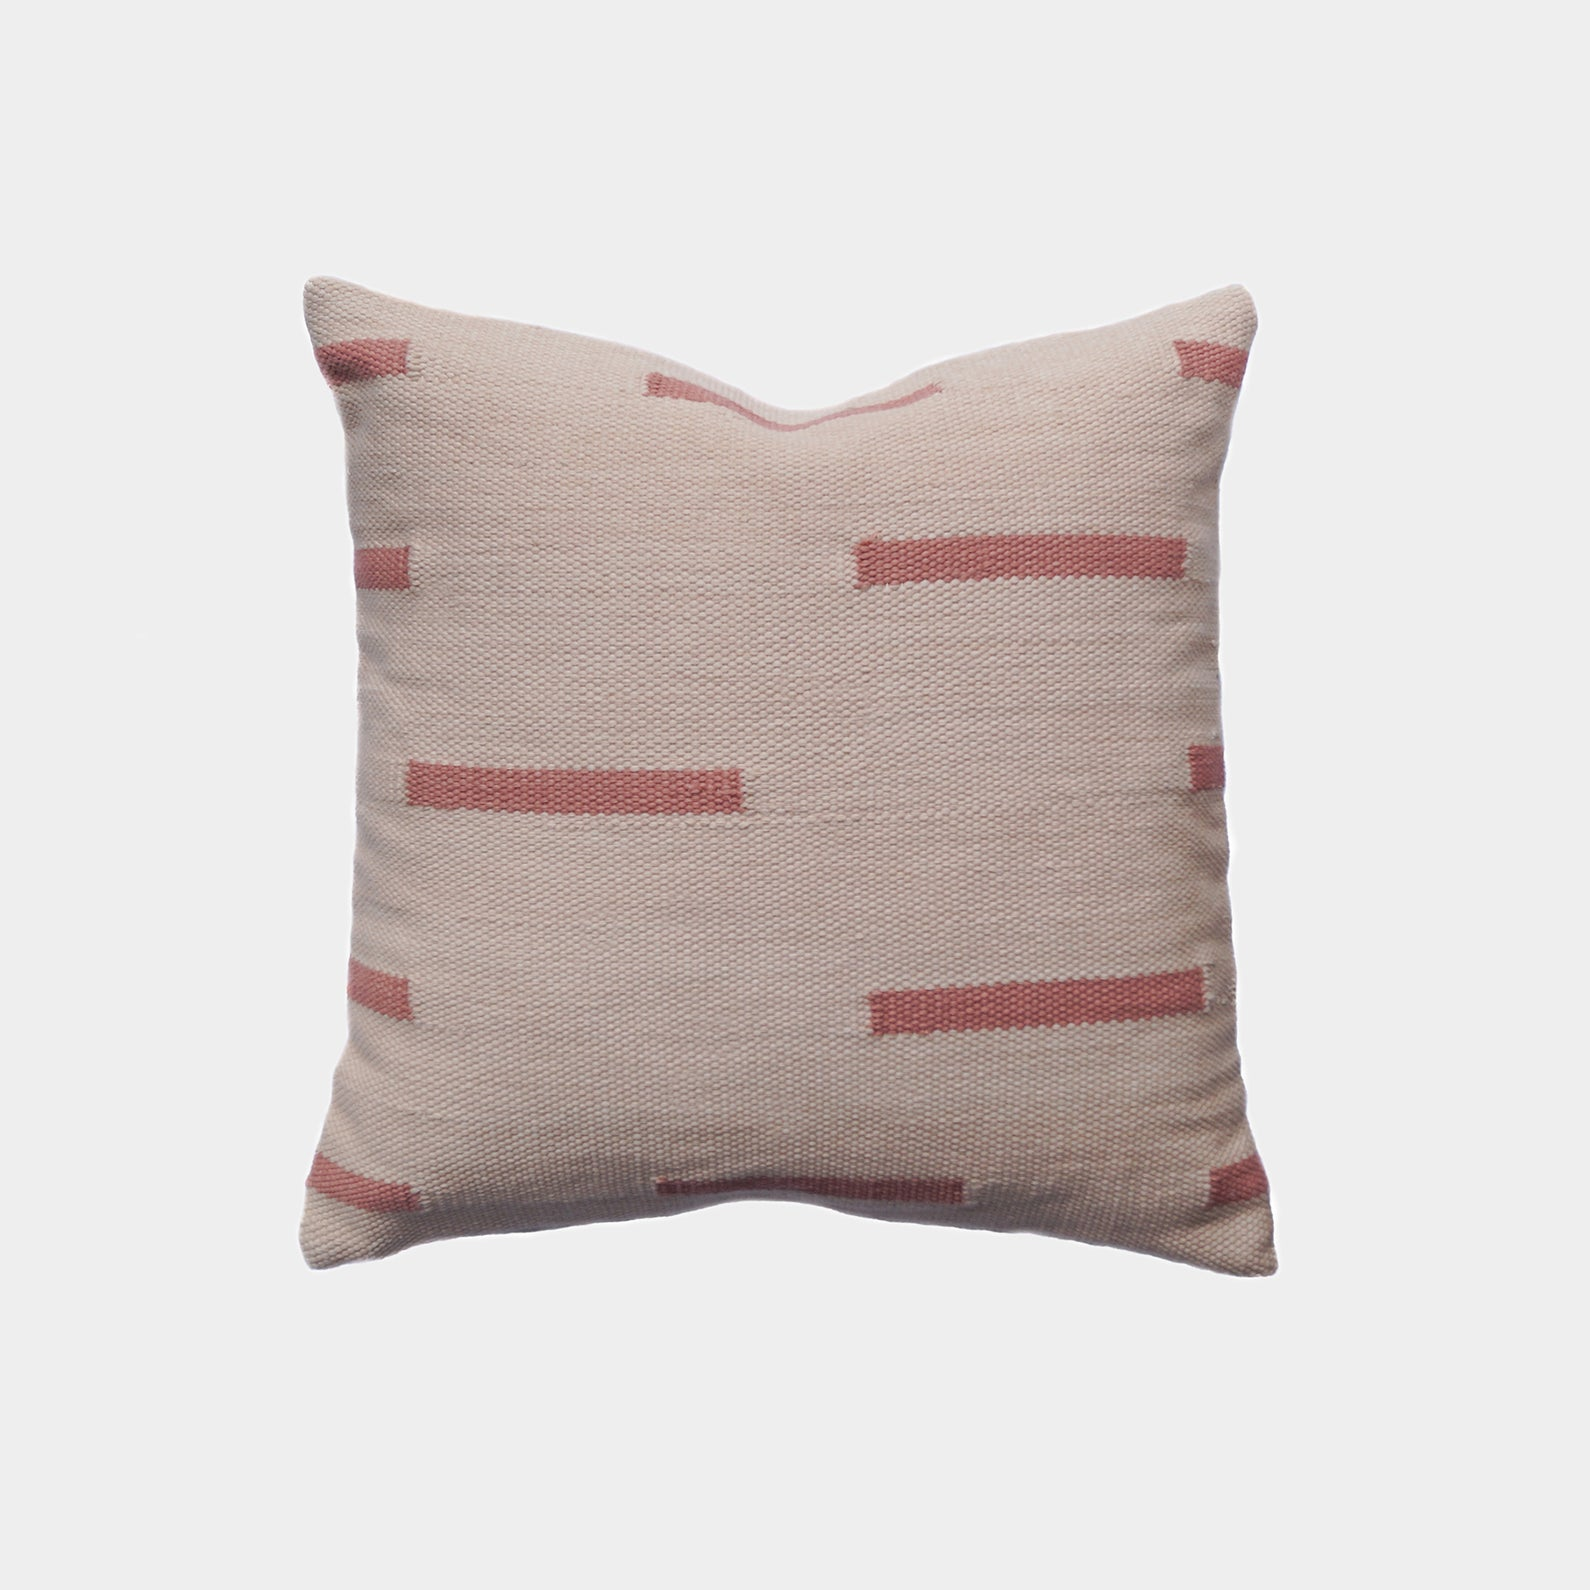 LUNA CUSHION COVER - HUNTER & CO.